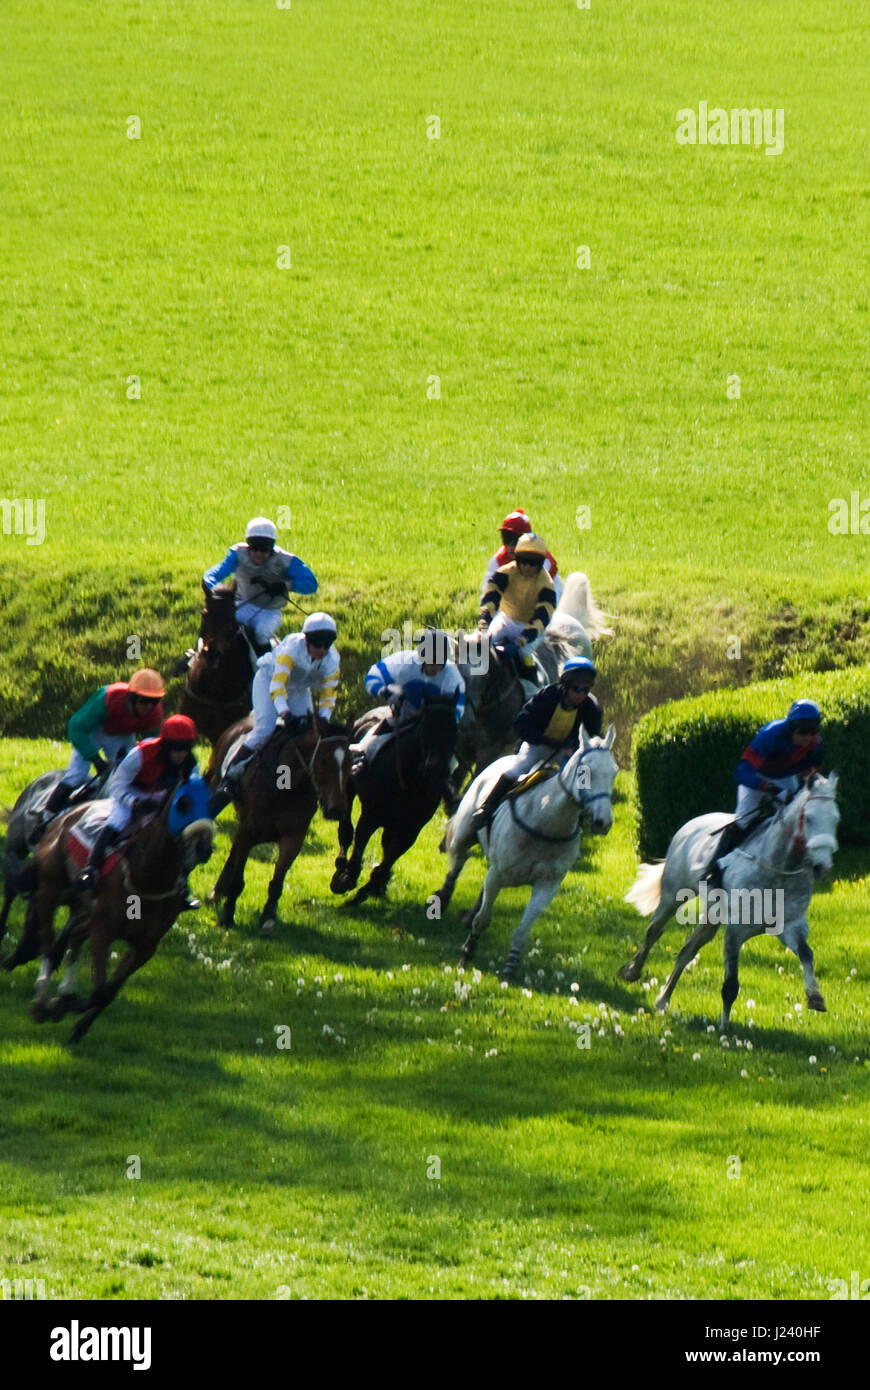 Steeplechase race stock photos steeplechase race stock for Steeplechase